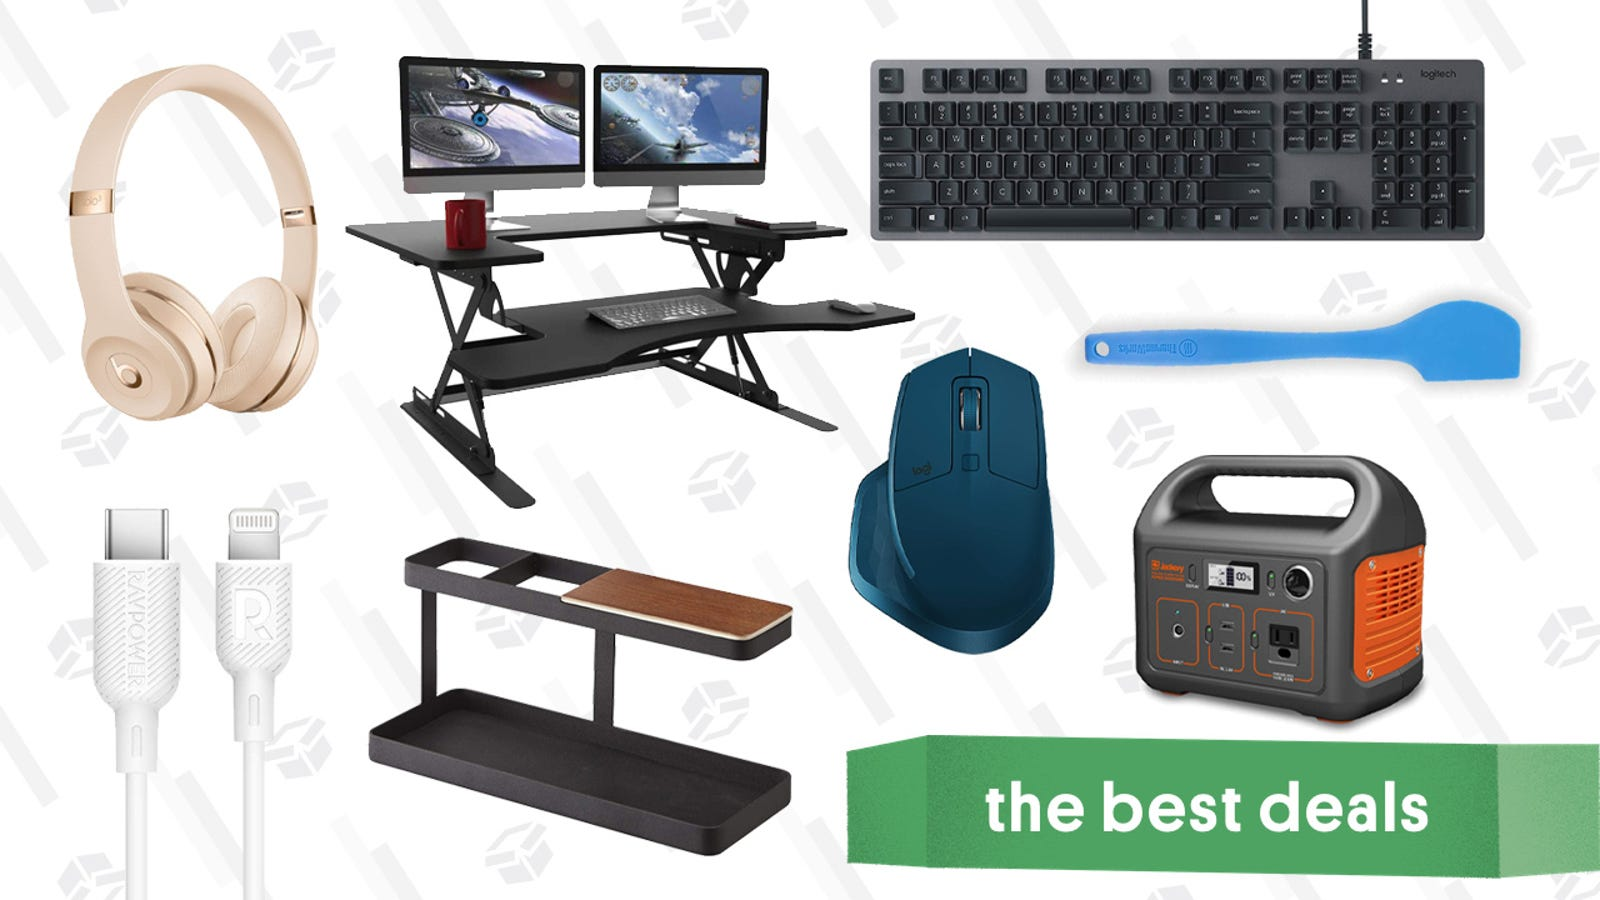 Thursday's Best Deals: Logitech Clearance, New iPhone Accessories, Costco Membership, and More